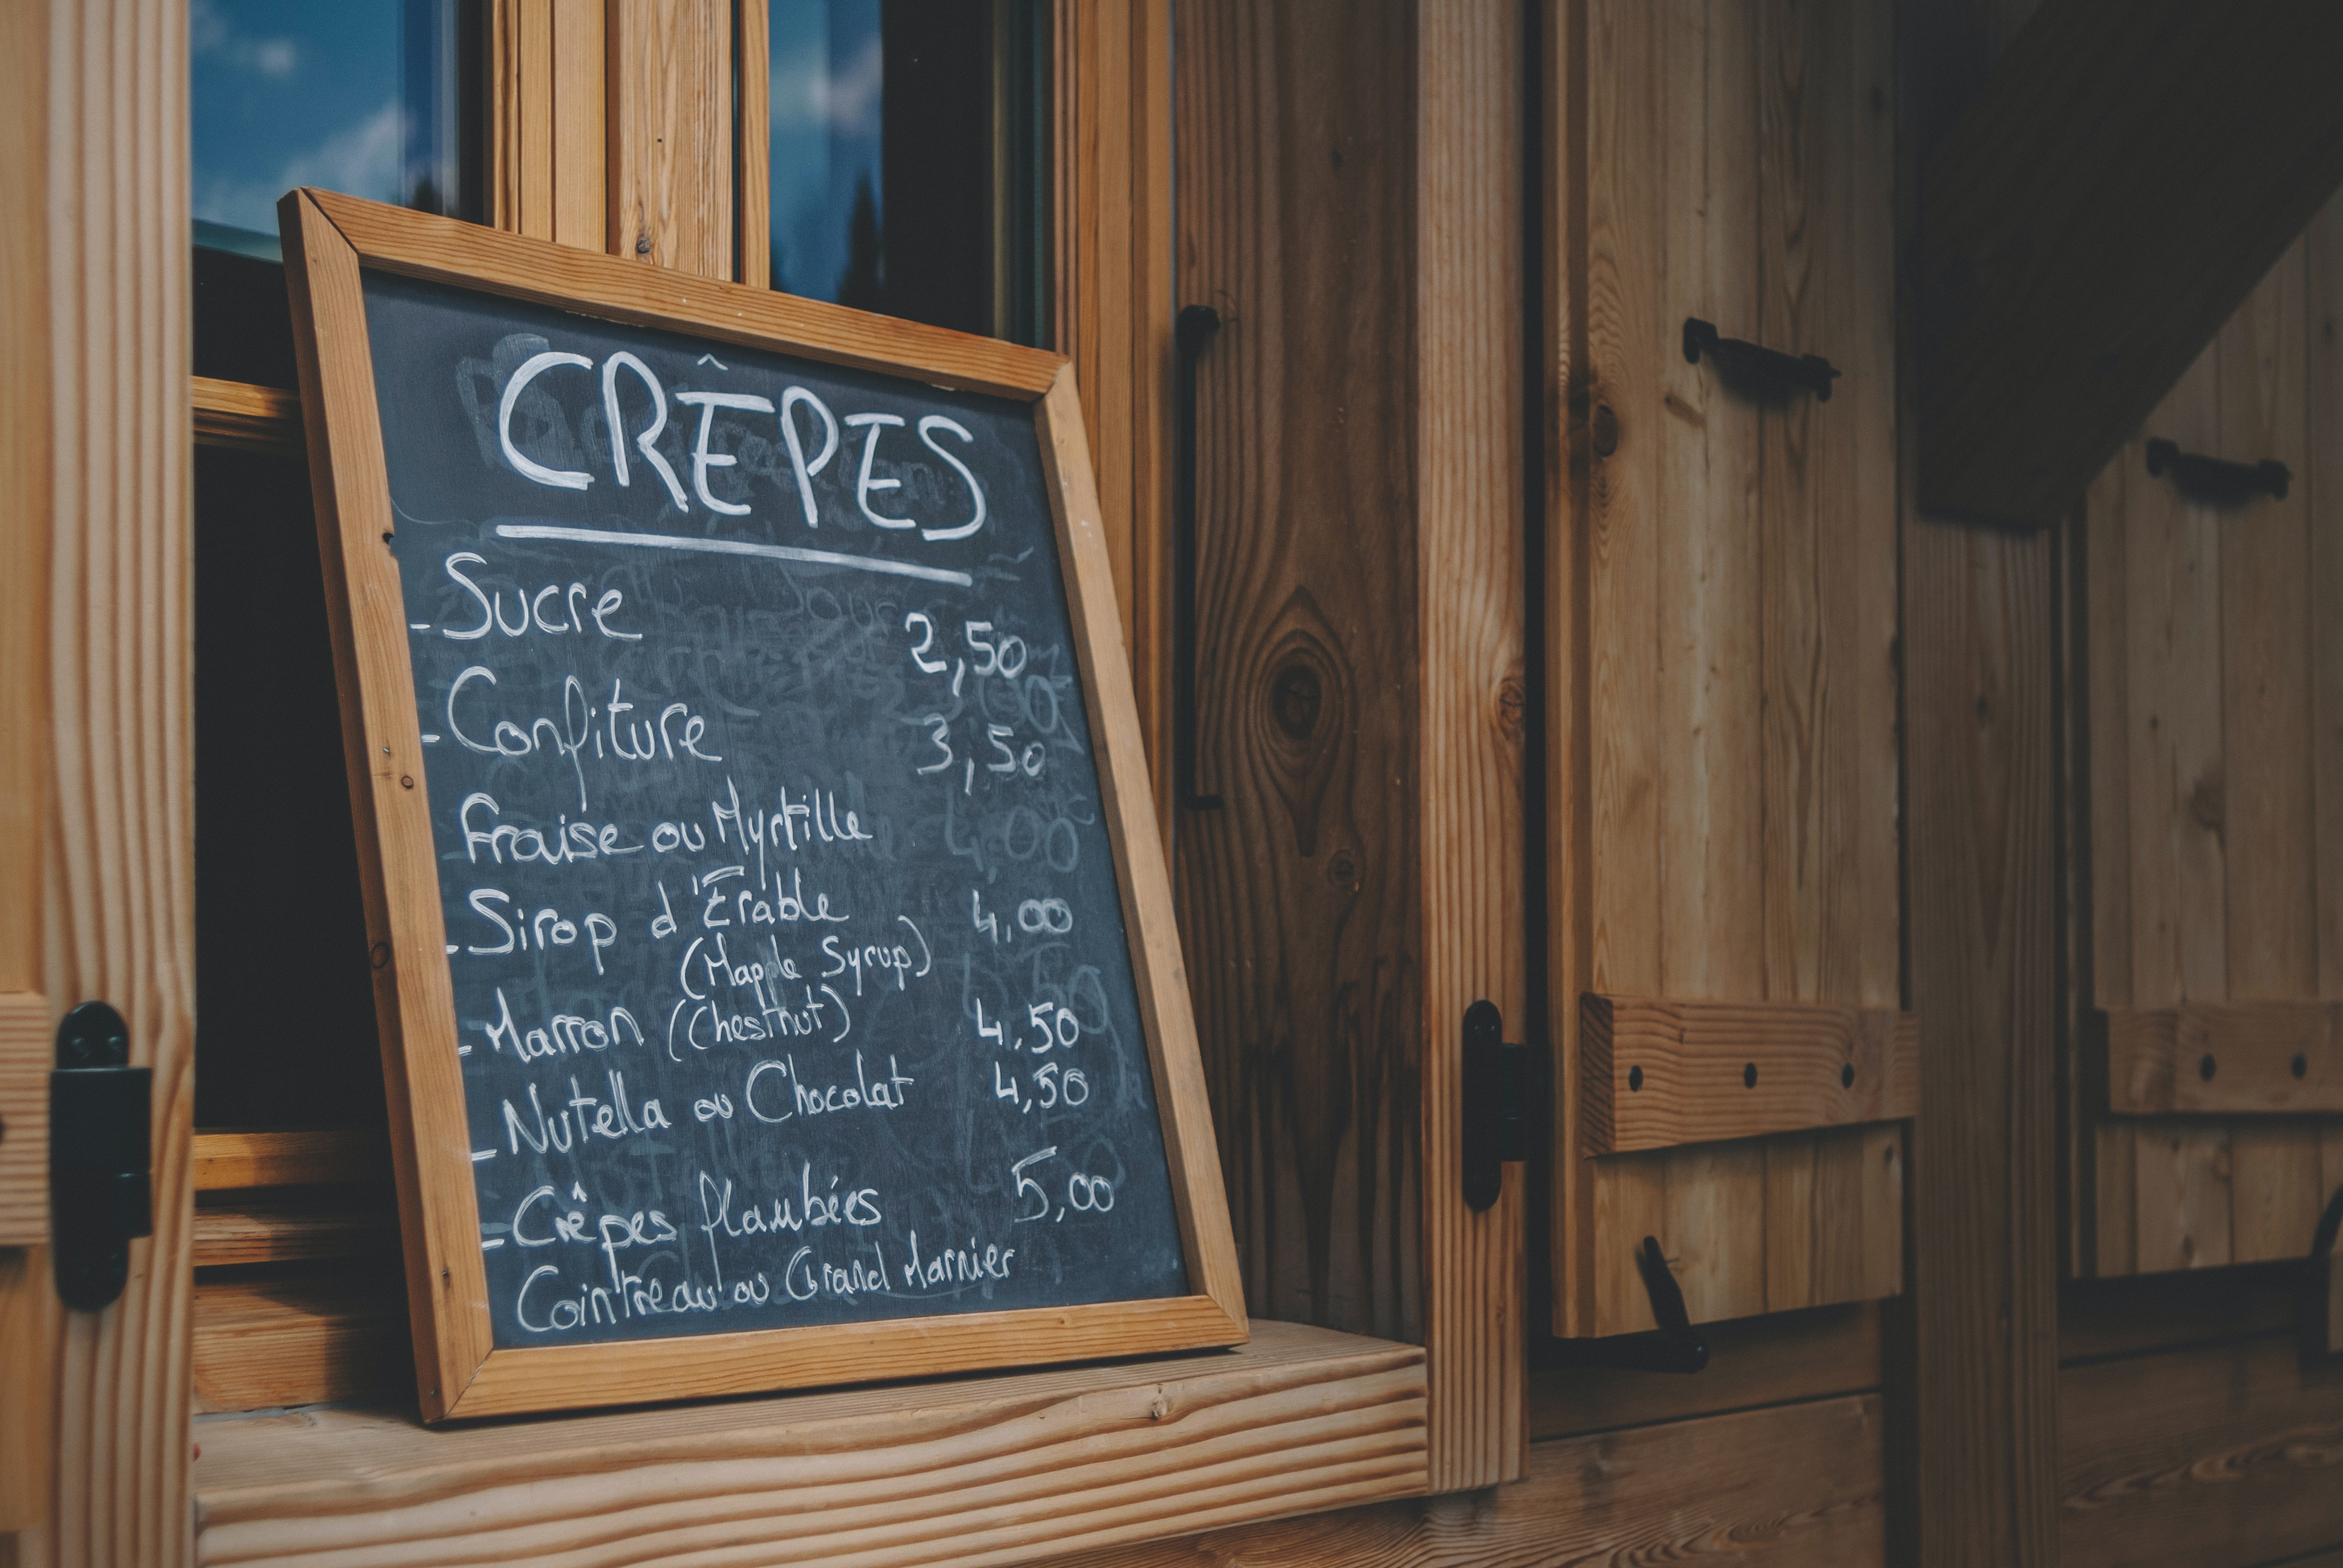 Chalkboard sign in wooden frame with crepes menu written